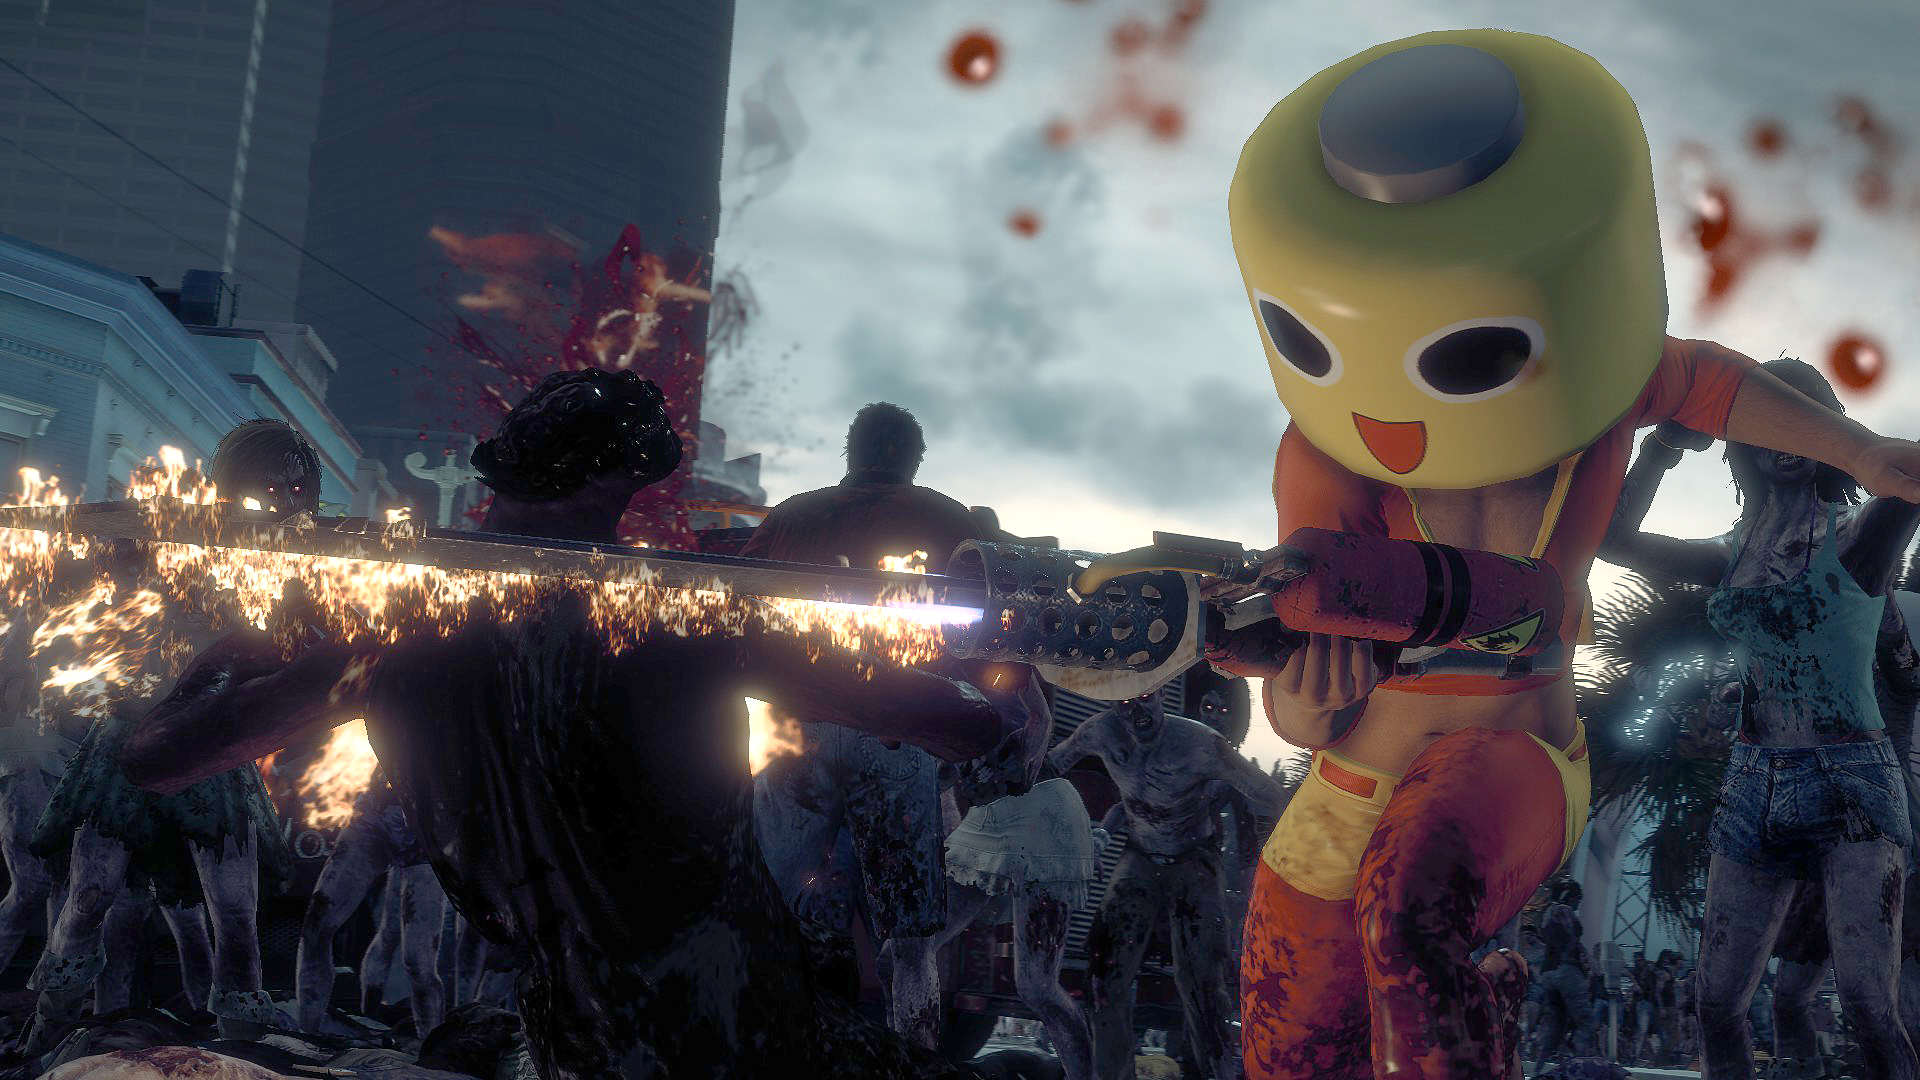 dead rising 3 flame sword 100412196 orig New Leak Suggests Dead Rising 4 To Be Announced At E3